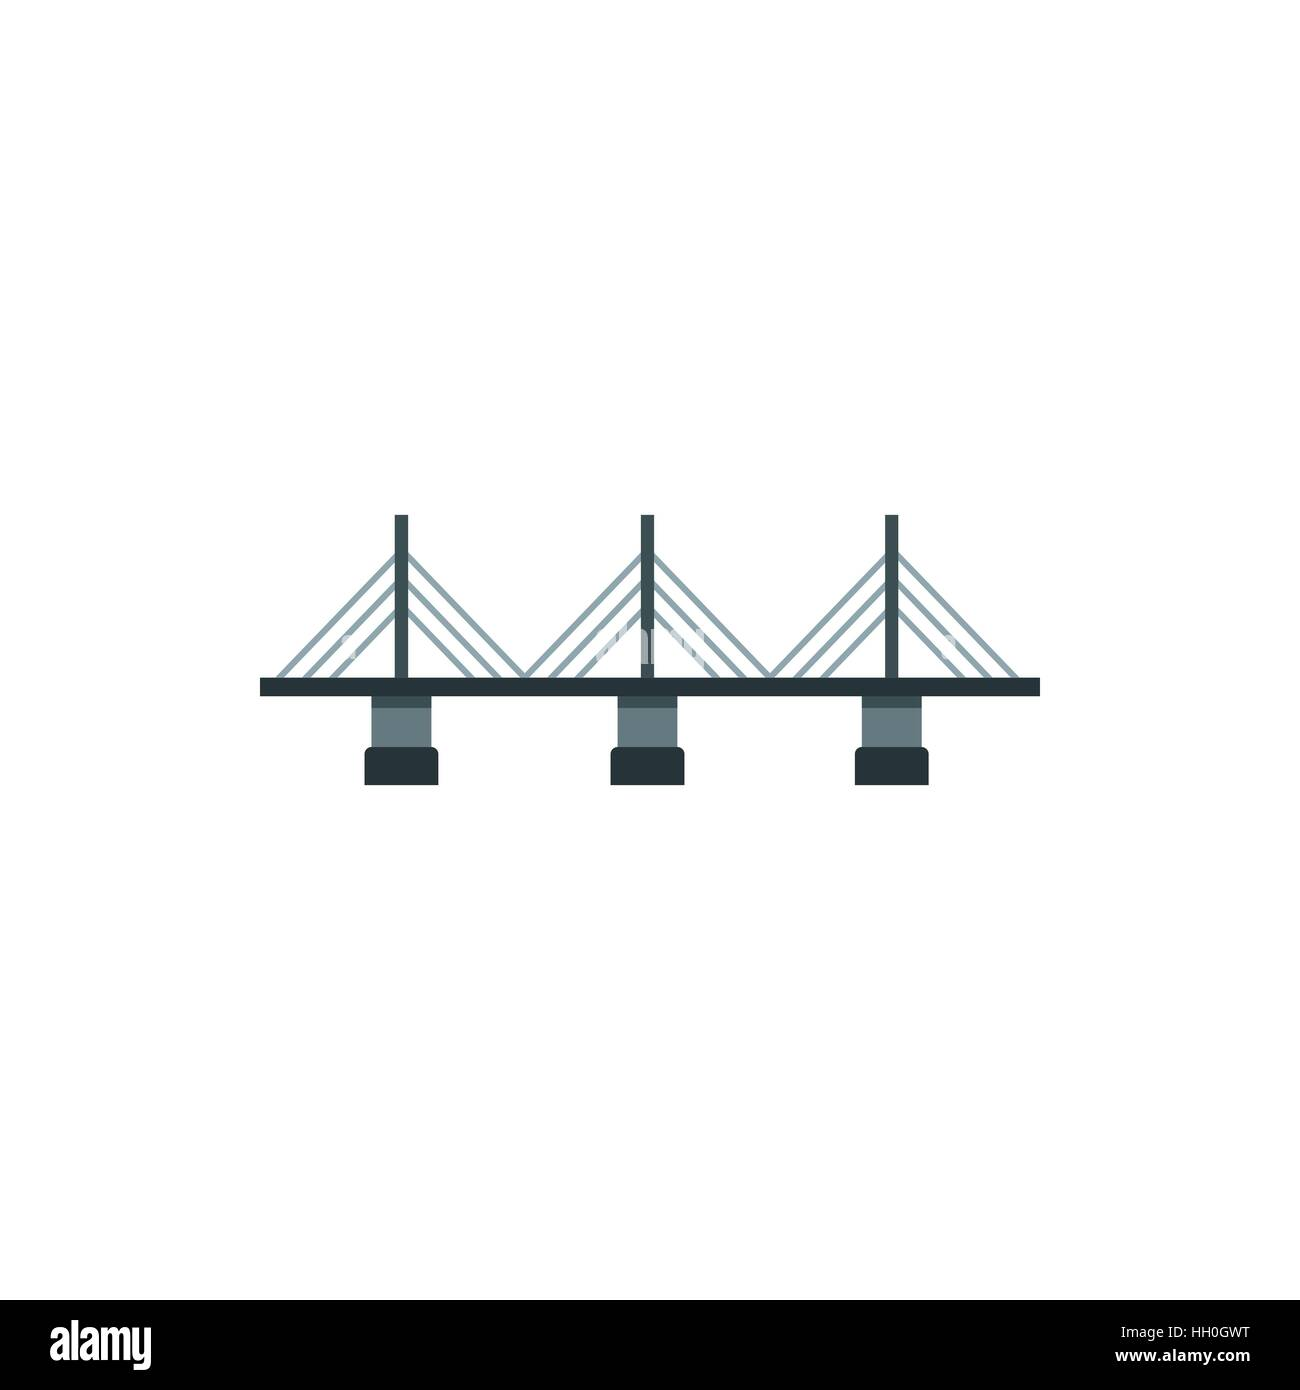 suspension bridge icon in flat style HH0GWT suspension bridge icon in flat style stock vector art & illustration